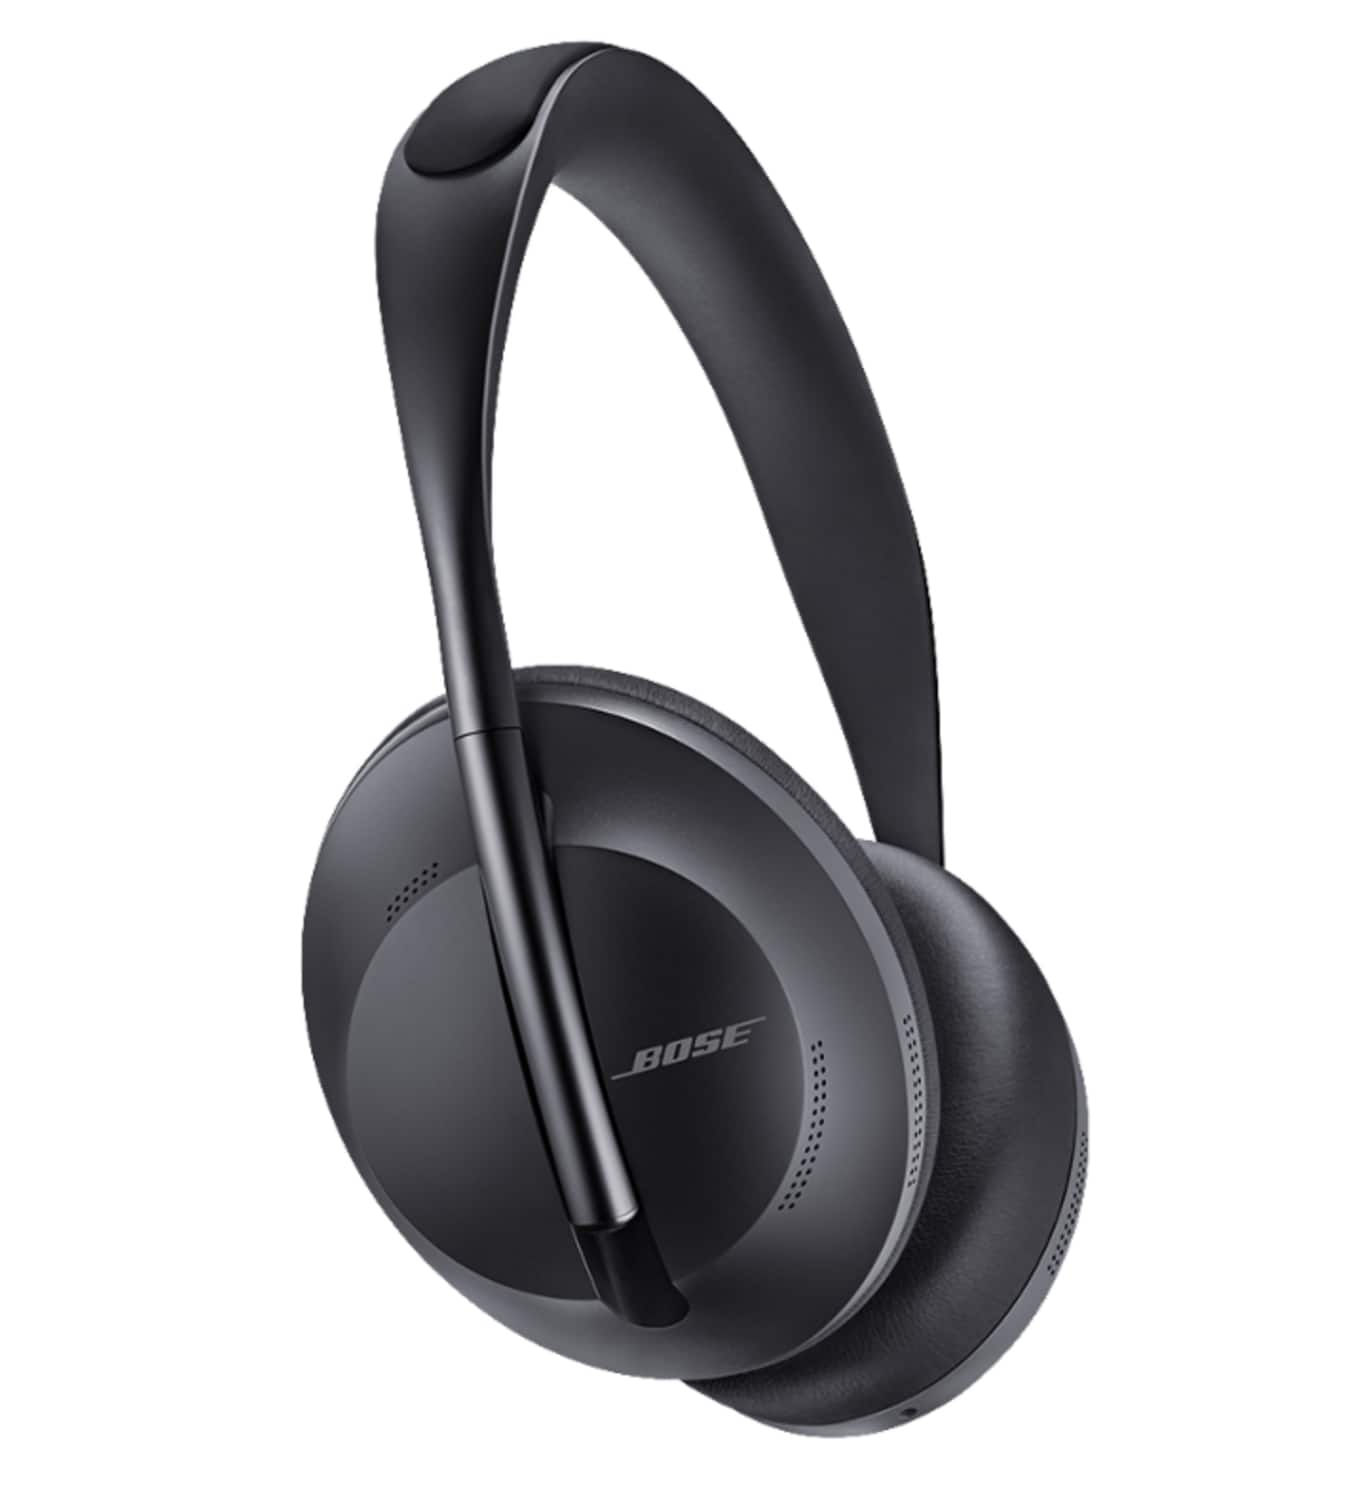 Bose Noise Cancelling Bluetooth Over-Ear Headphones 700 (Refurbished)